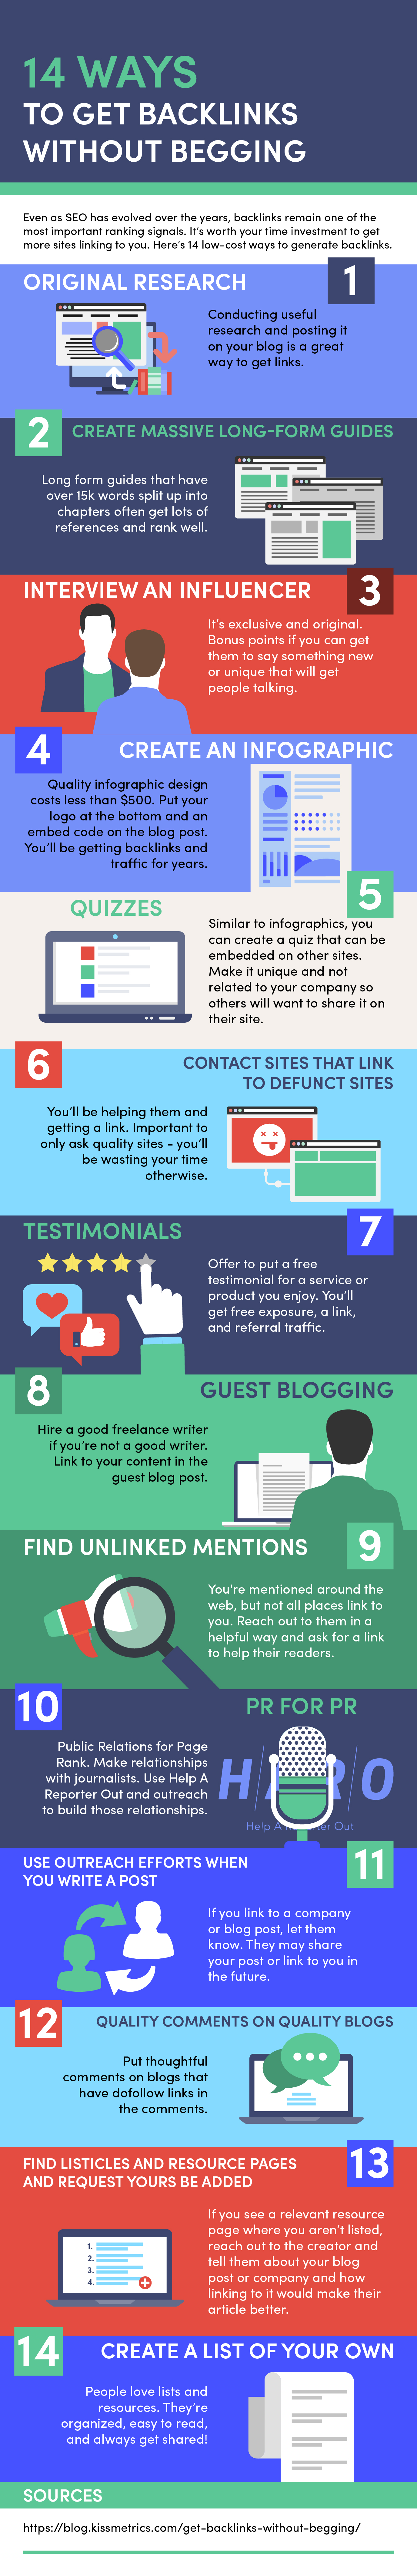 get-backlinks-without-begging-infographic